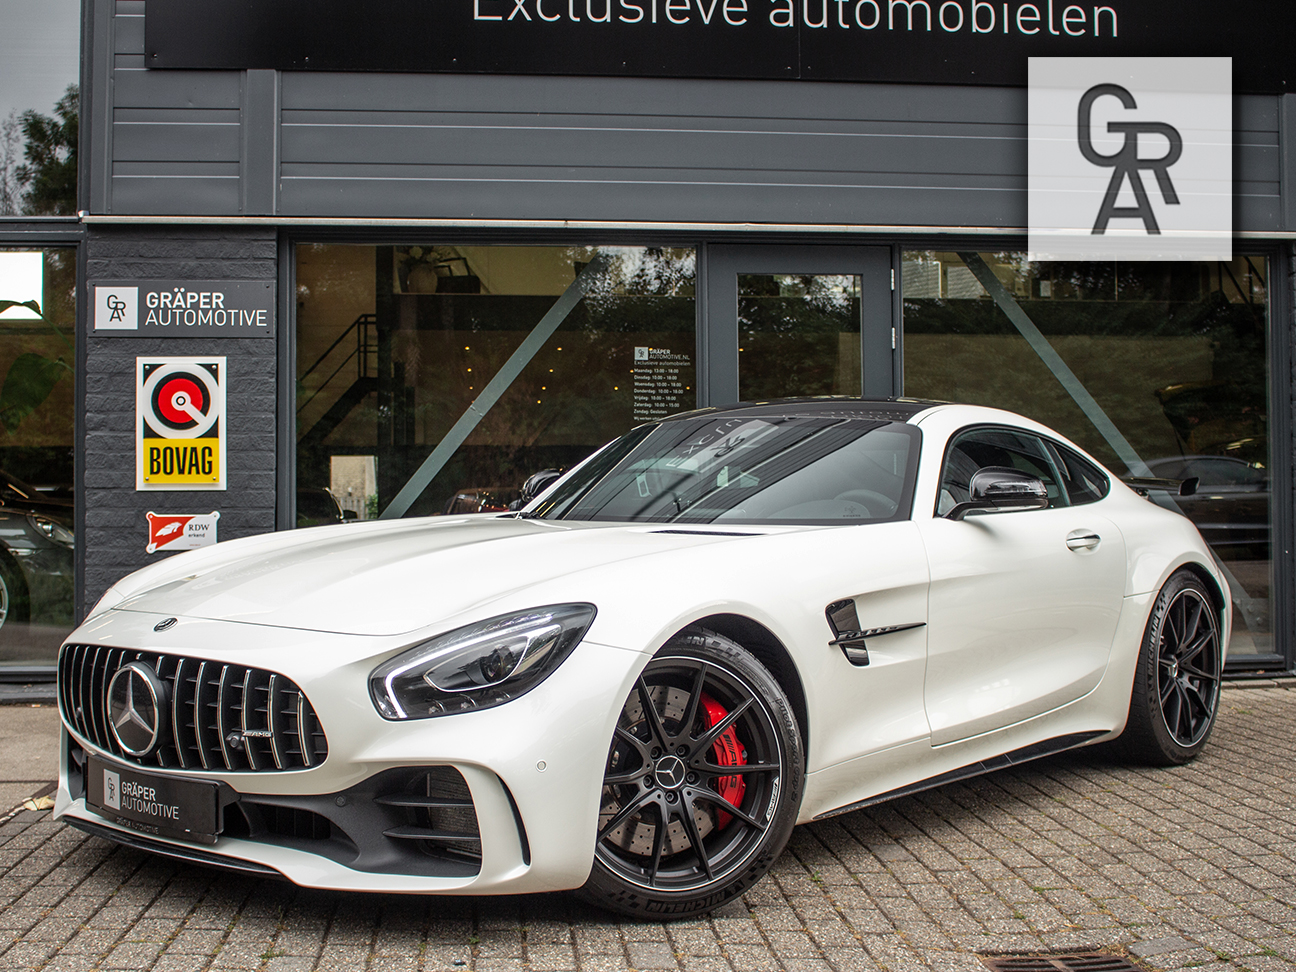 occasion van de week mercedes amg gt r t w v. Black Bedroom Furniture Sets. Home Design Ideas